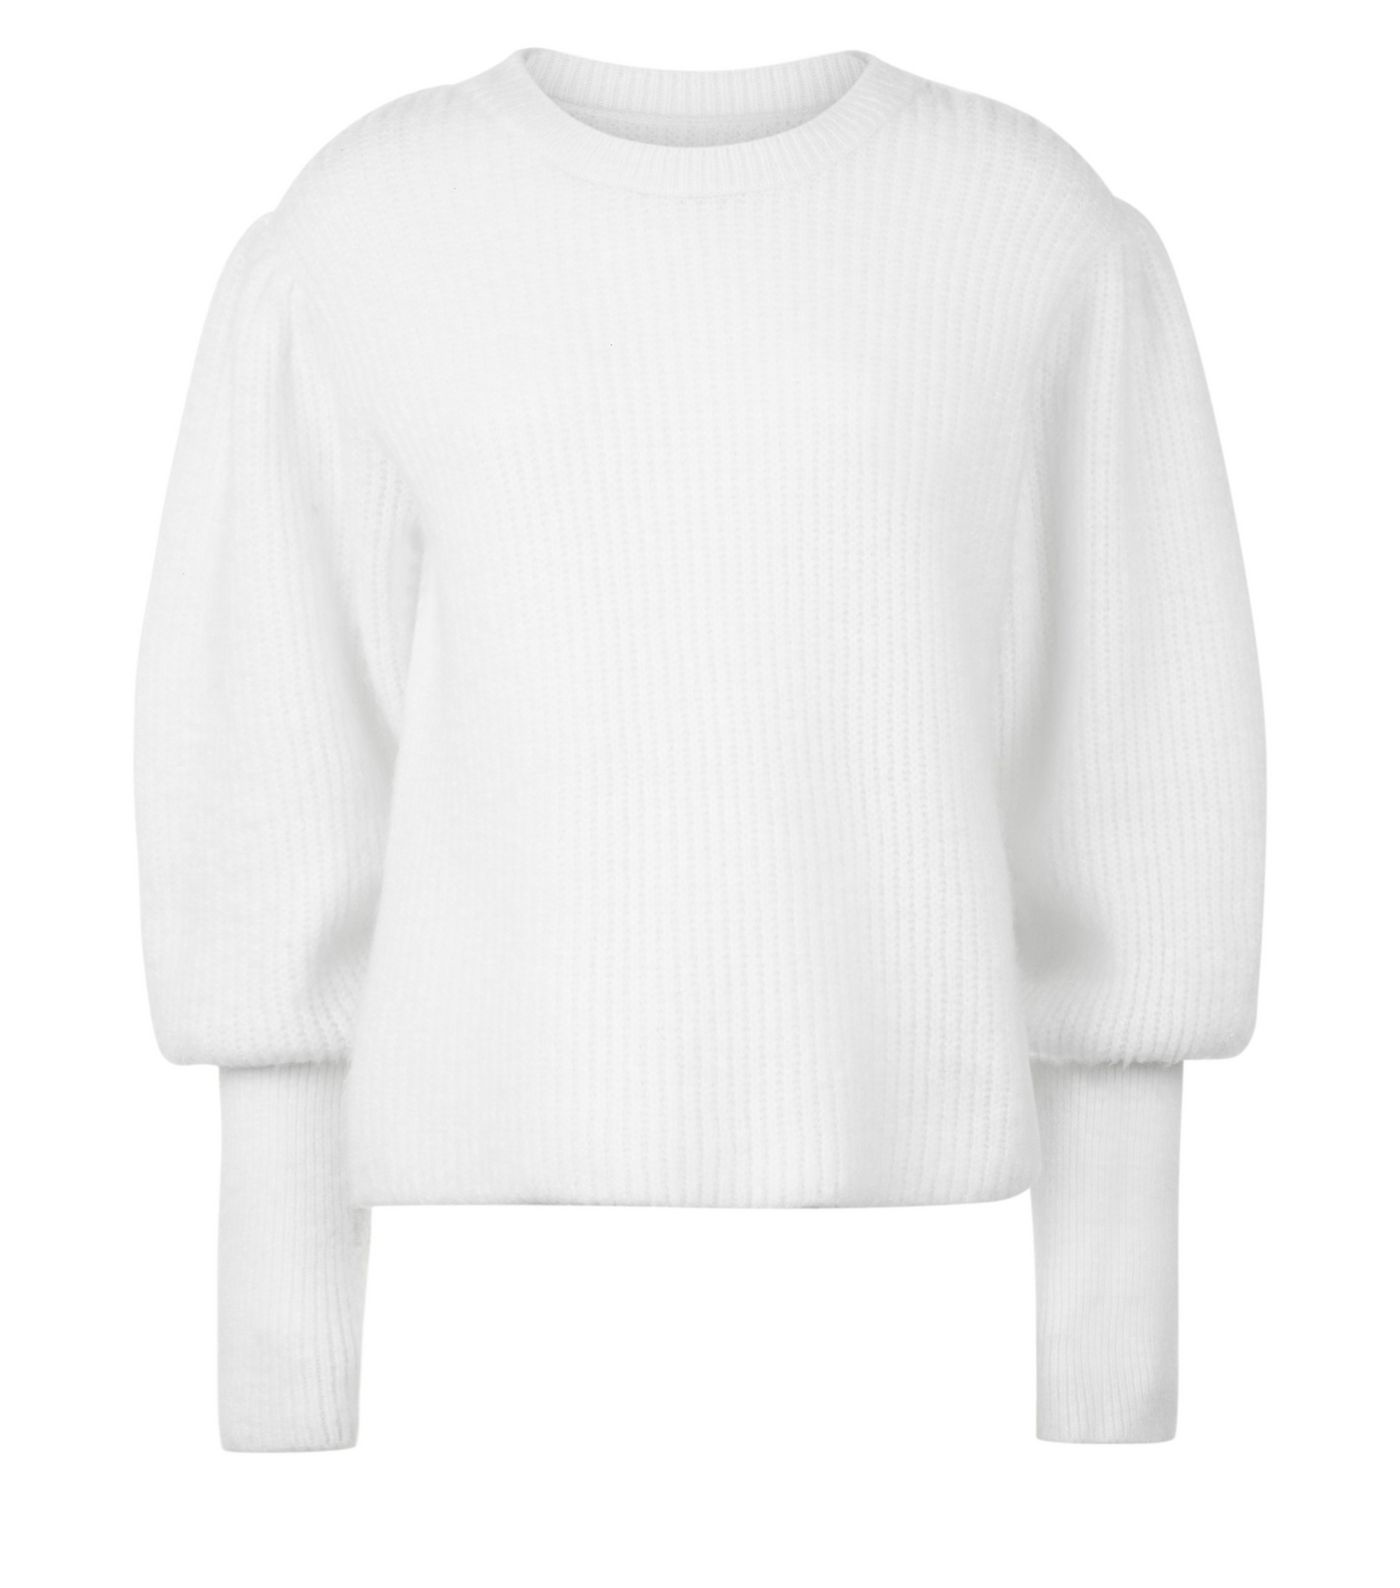 New Look White Jumper with Balloon Sleeves